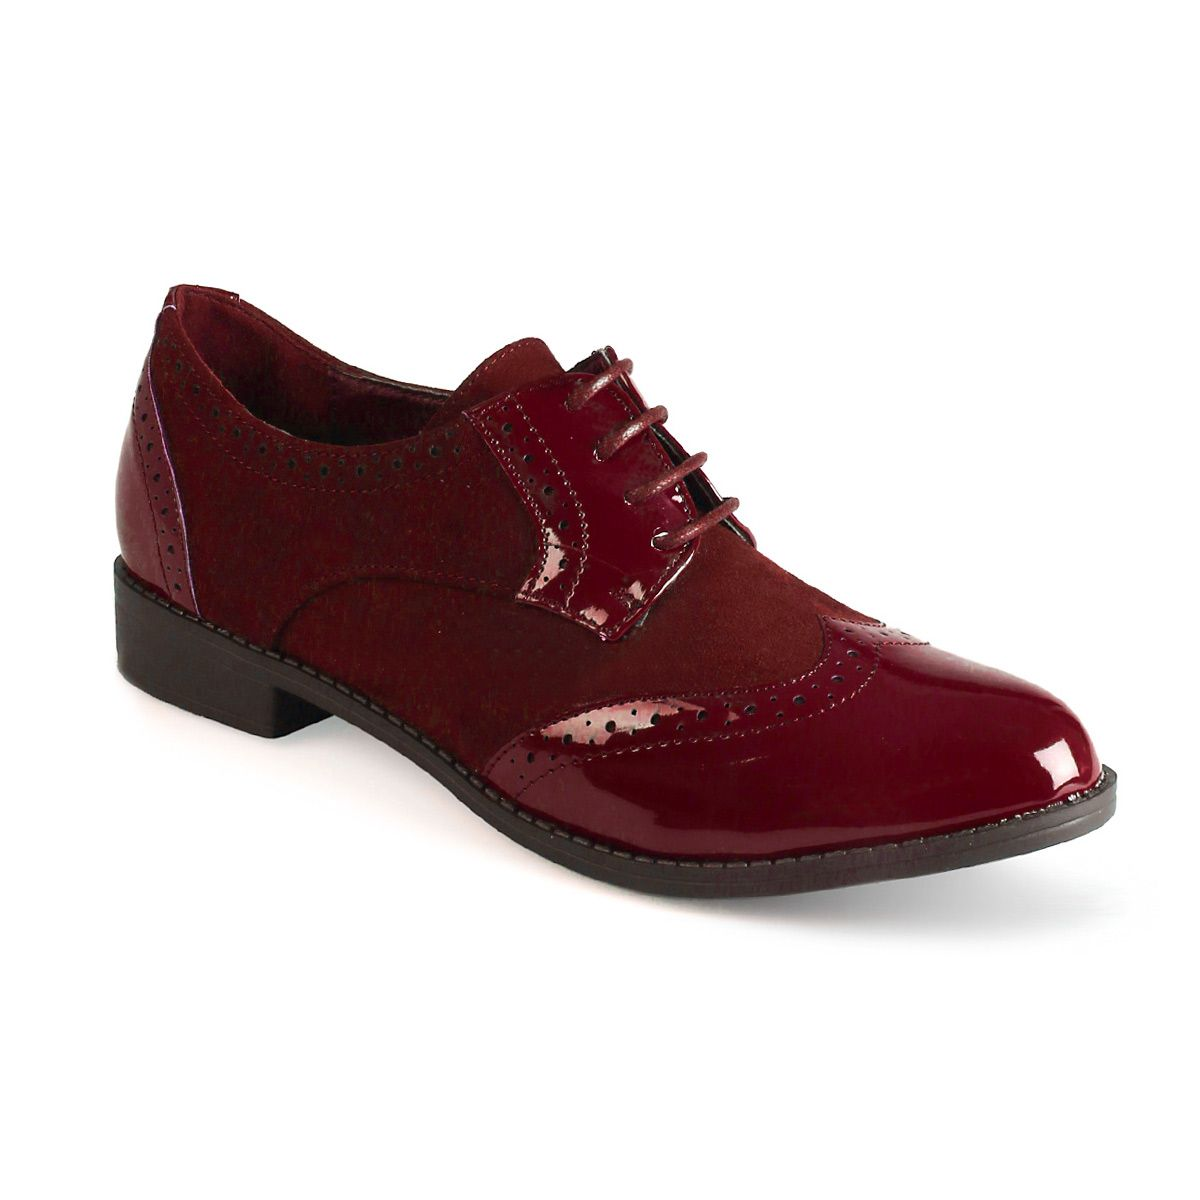 La Modeuse Derbies vernis bordeaux Rouge - Chaussures Derbies Femme